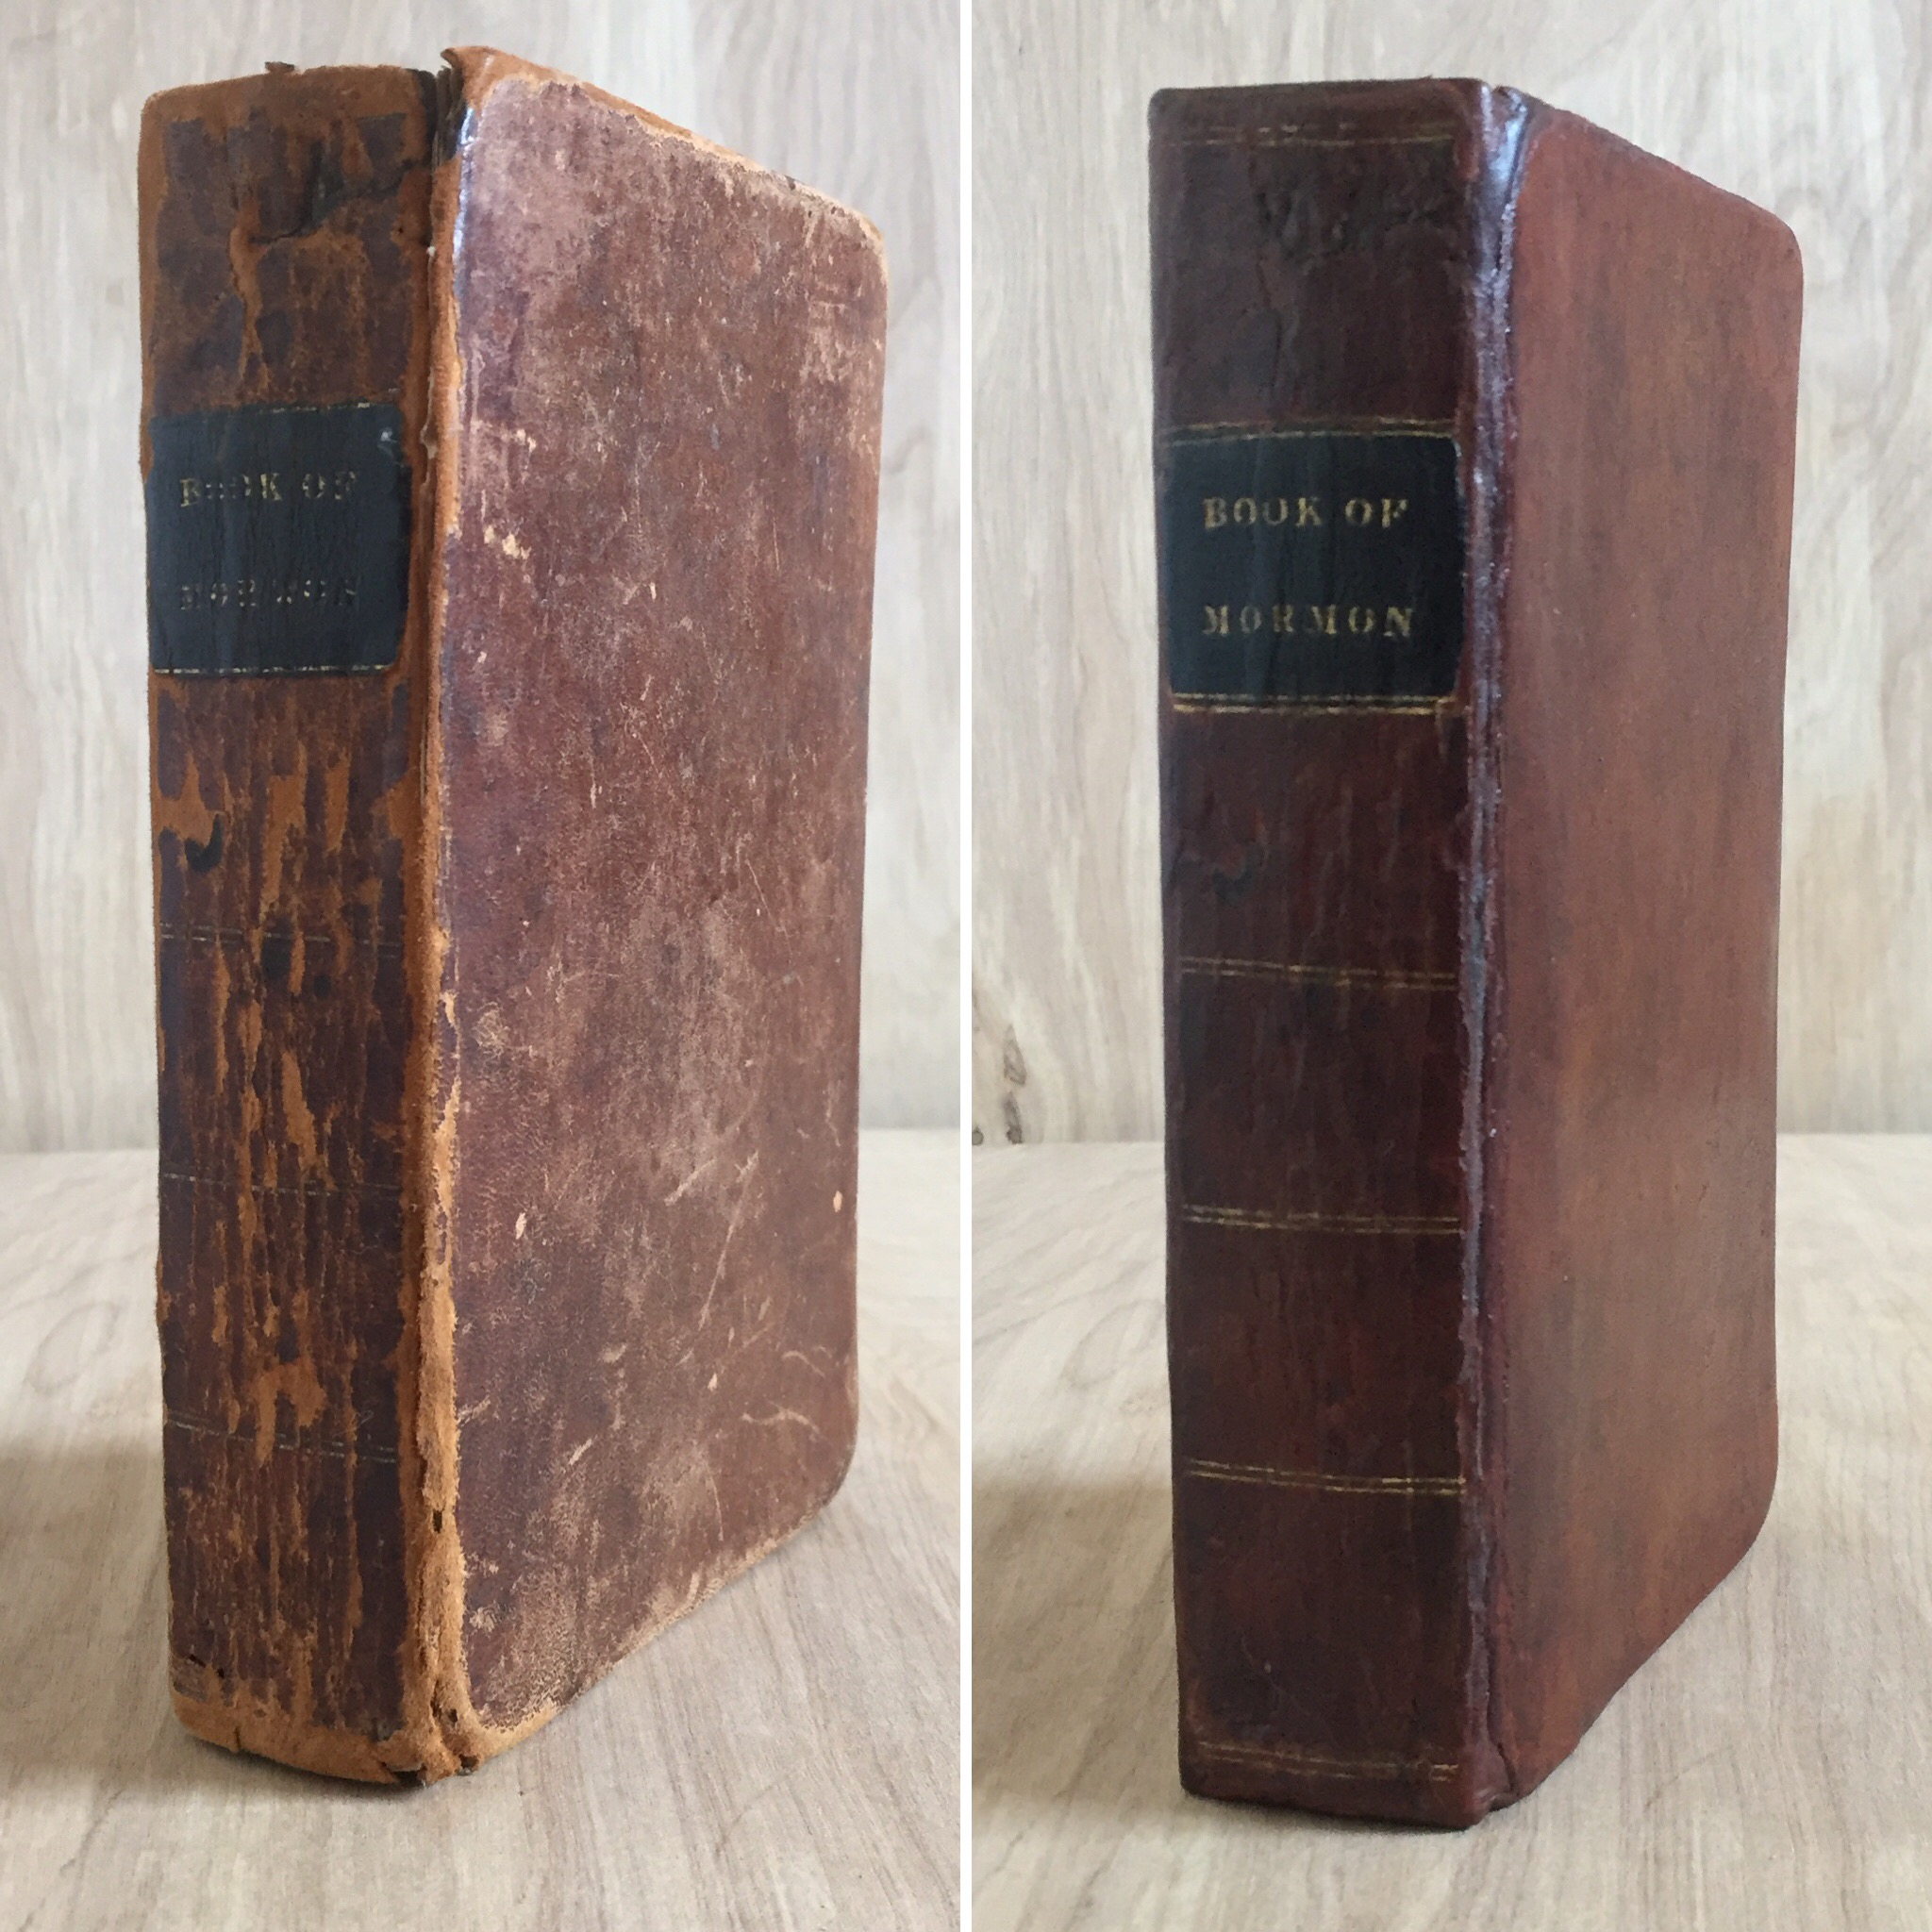 1830 First edition Book of Mormon before and after restoration.